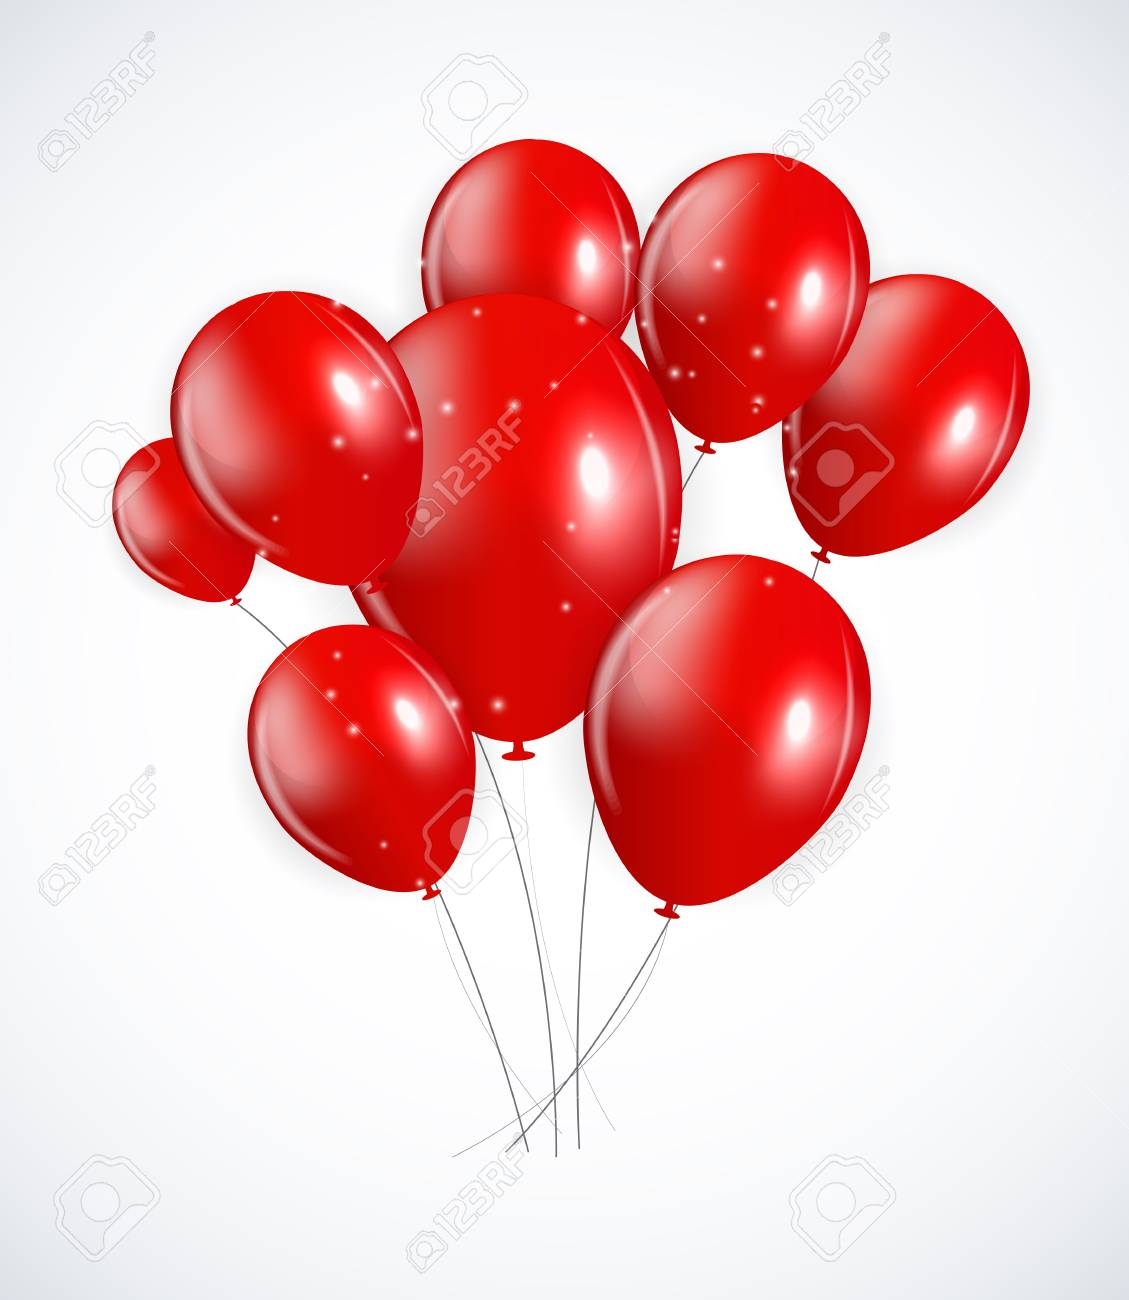 Set Of Red Balloons Vector Illustration EPS10 Stock